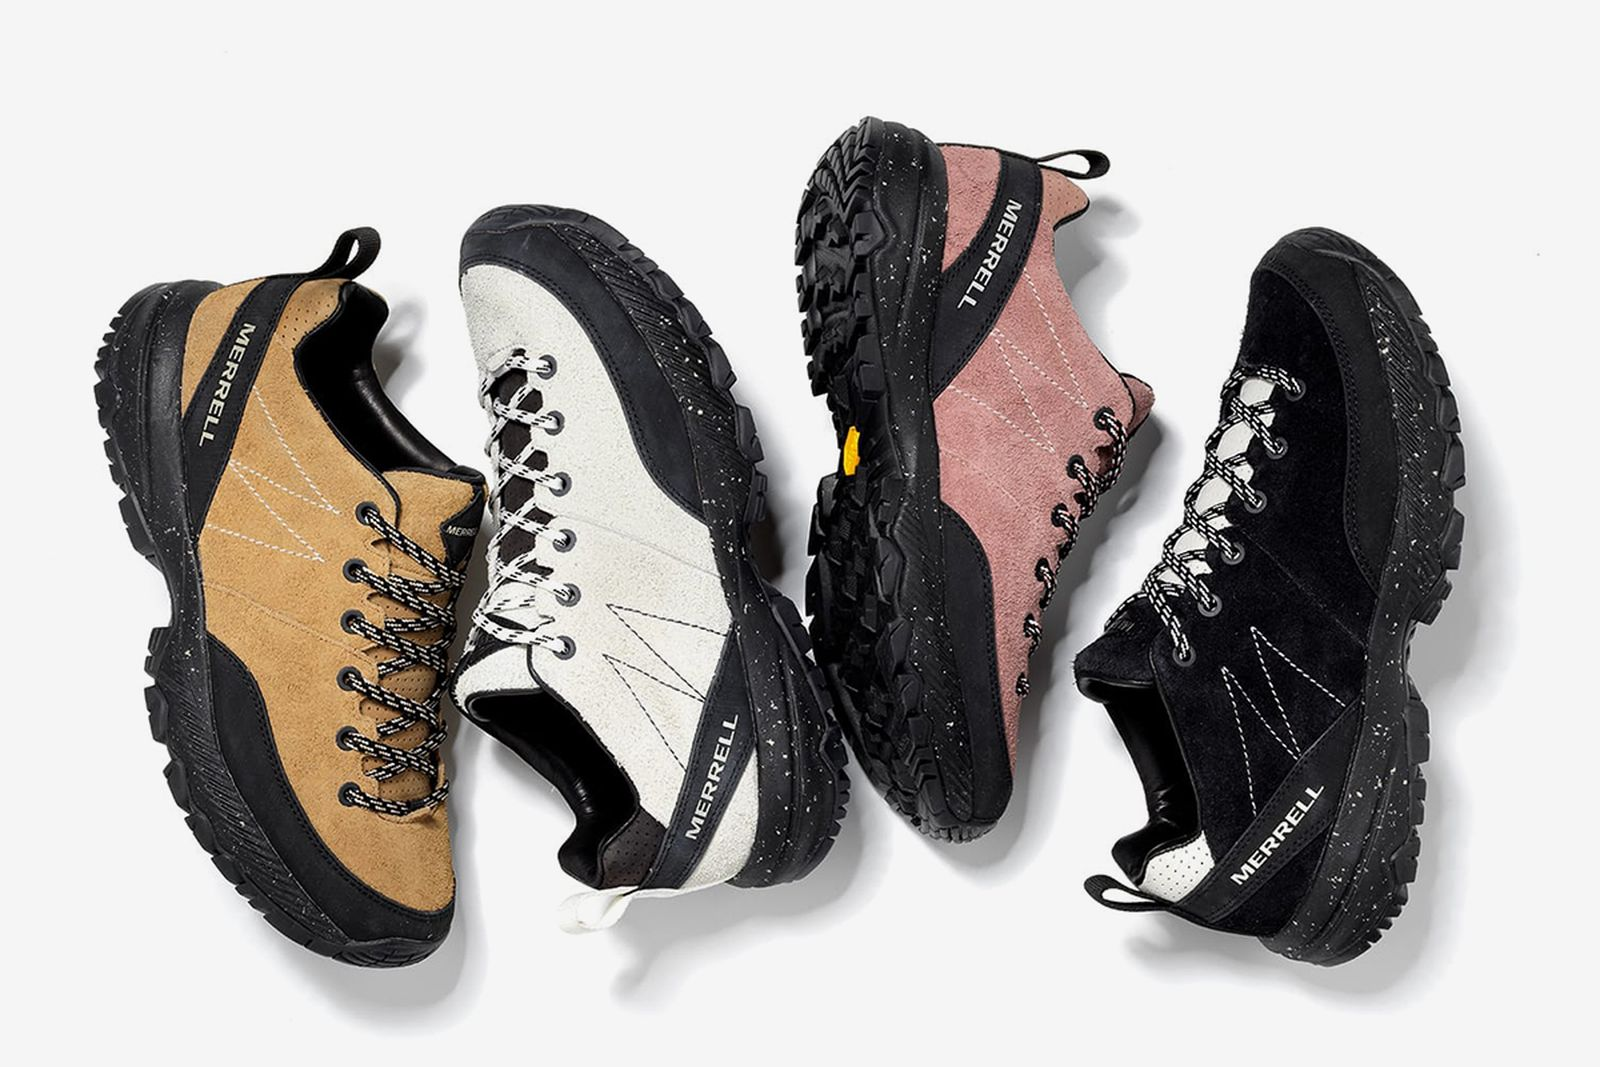 merrell-ss21-1trl-collection-03a